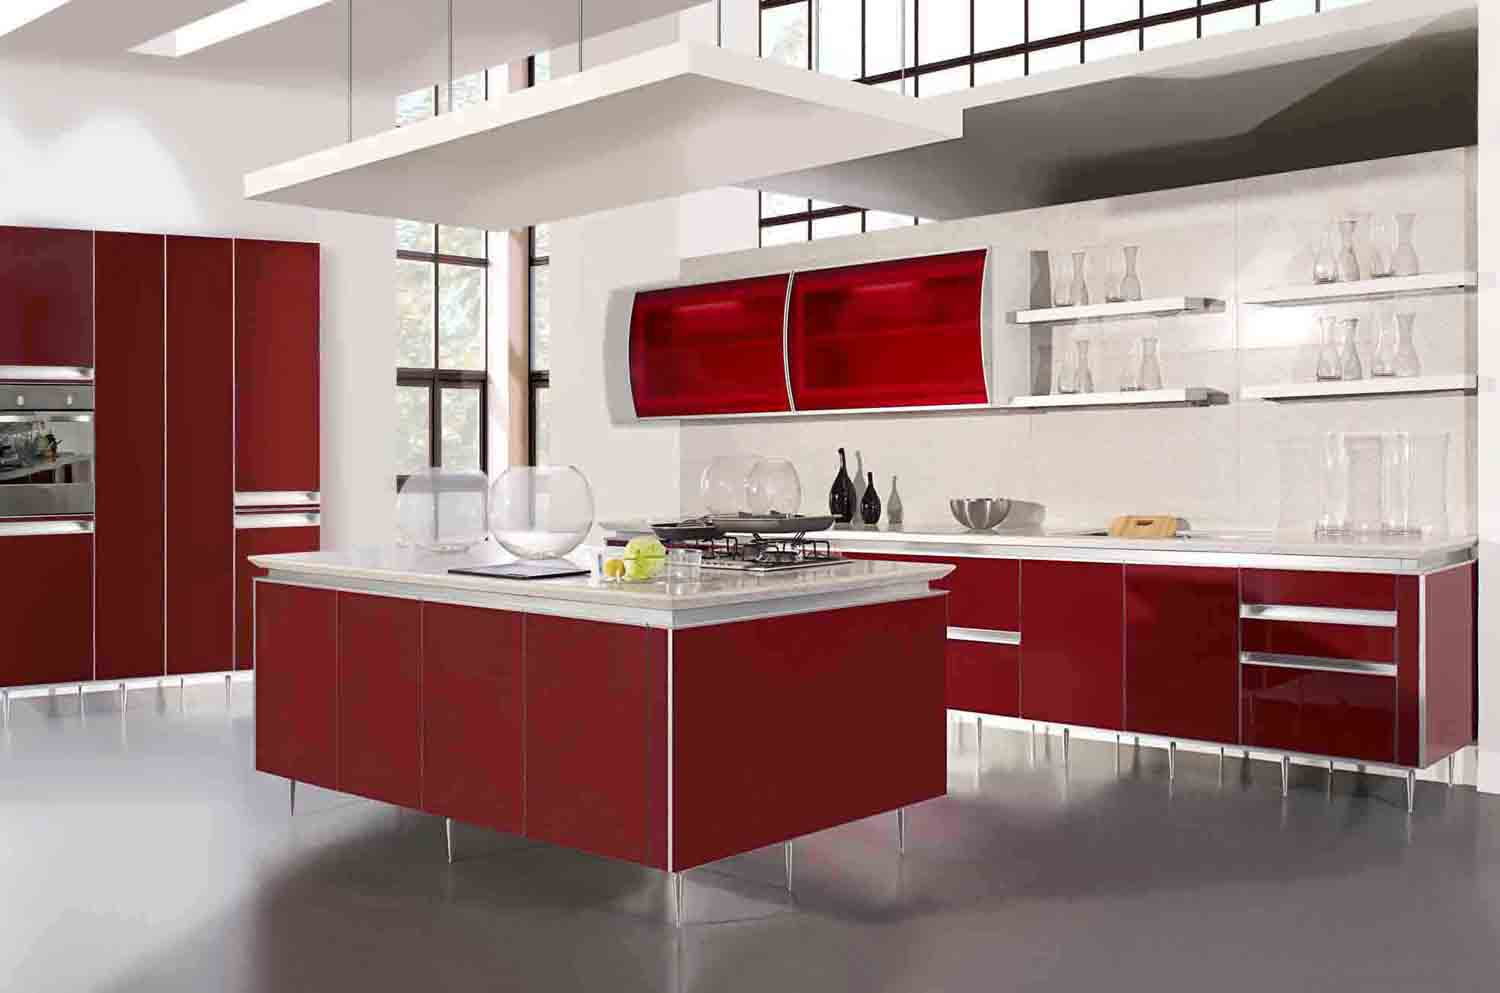 Kitchen styles pictures kitchen design photos 2015 for New style kitchen images